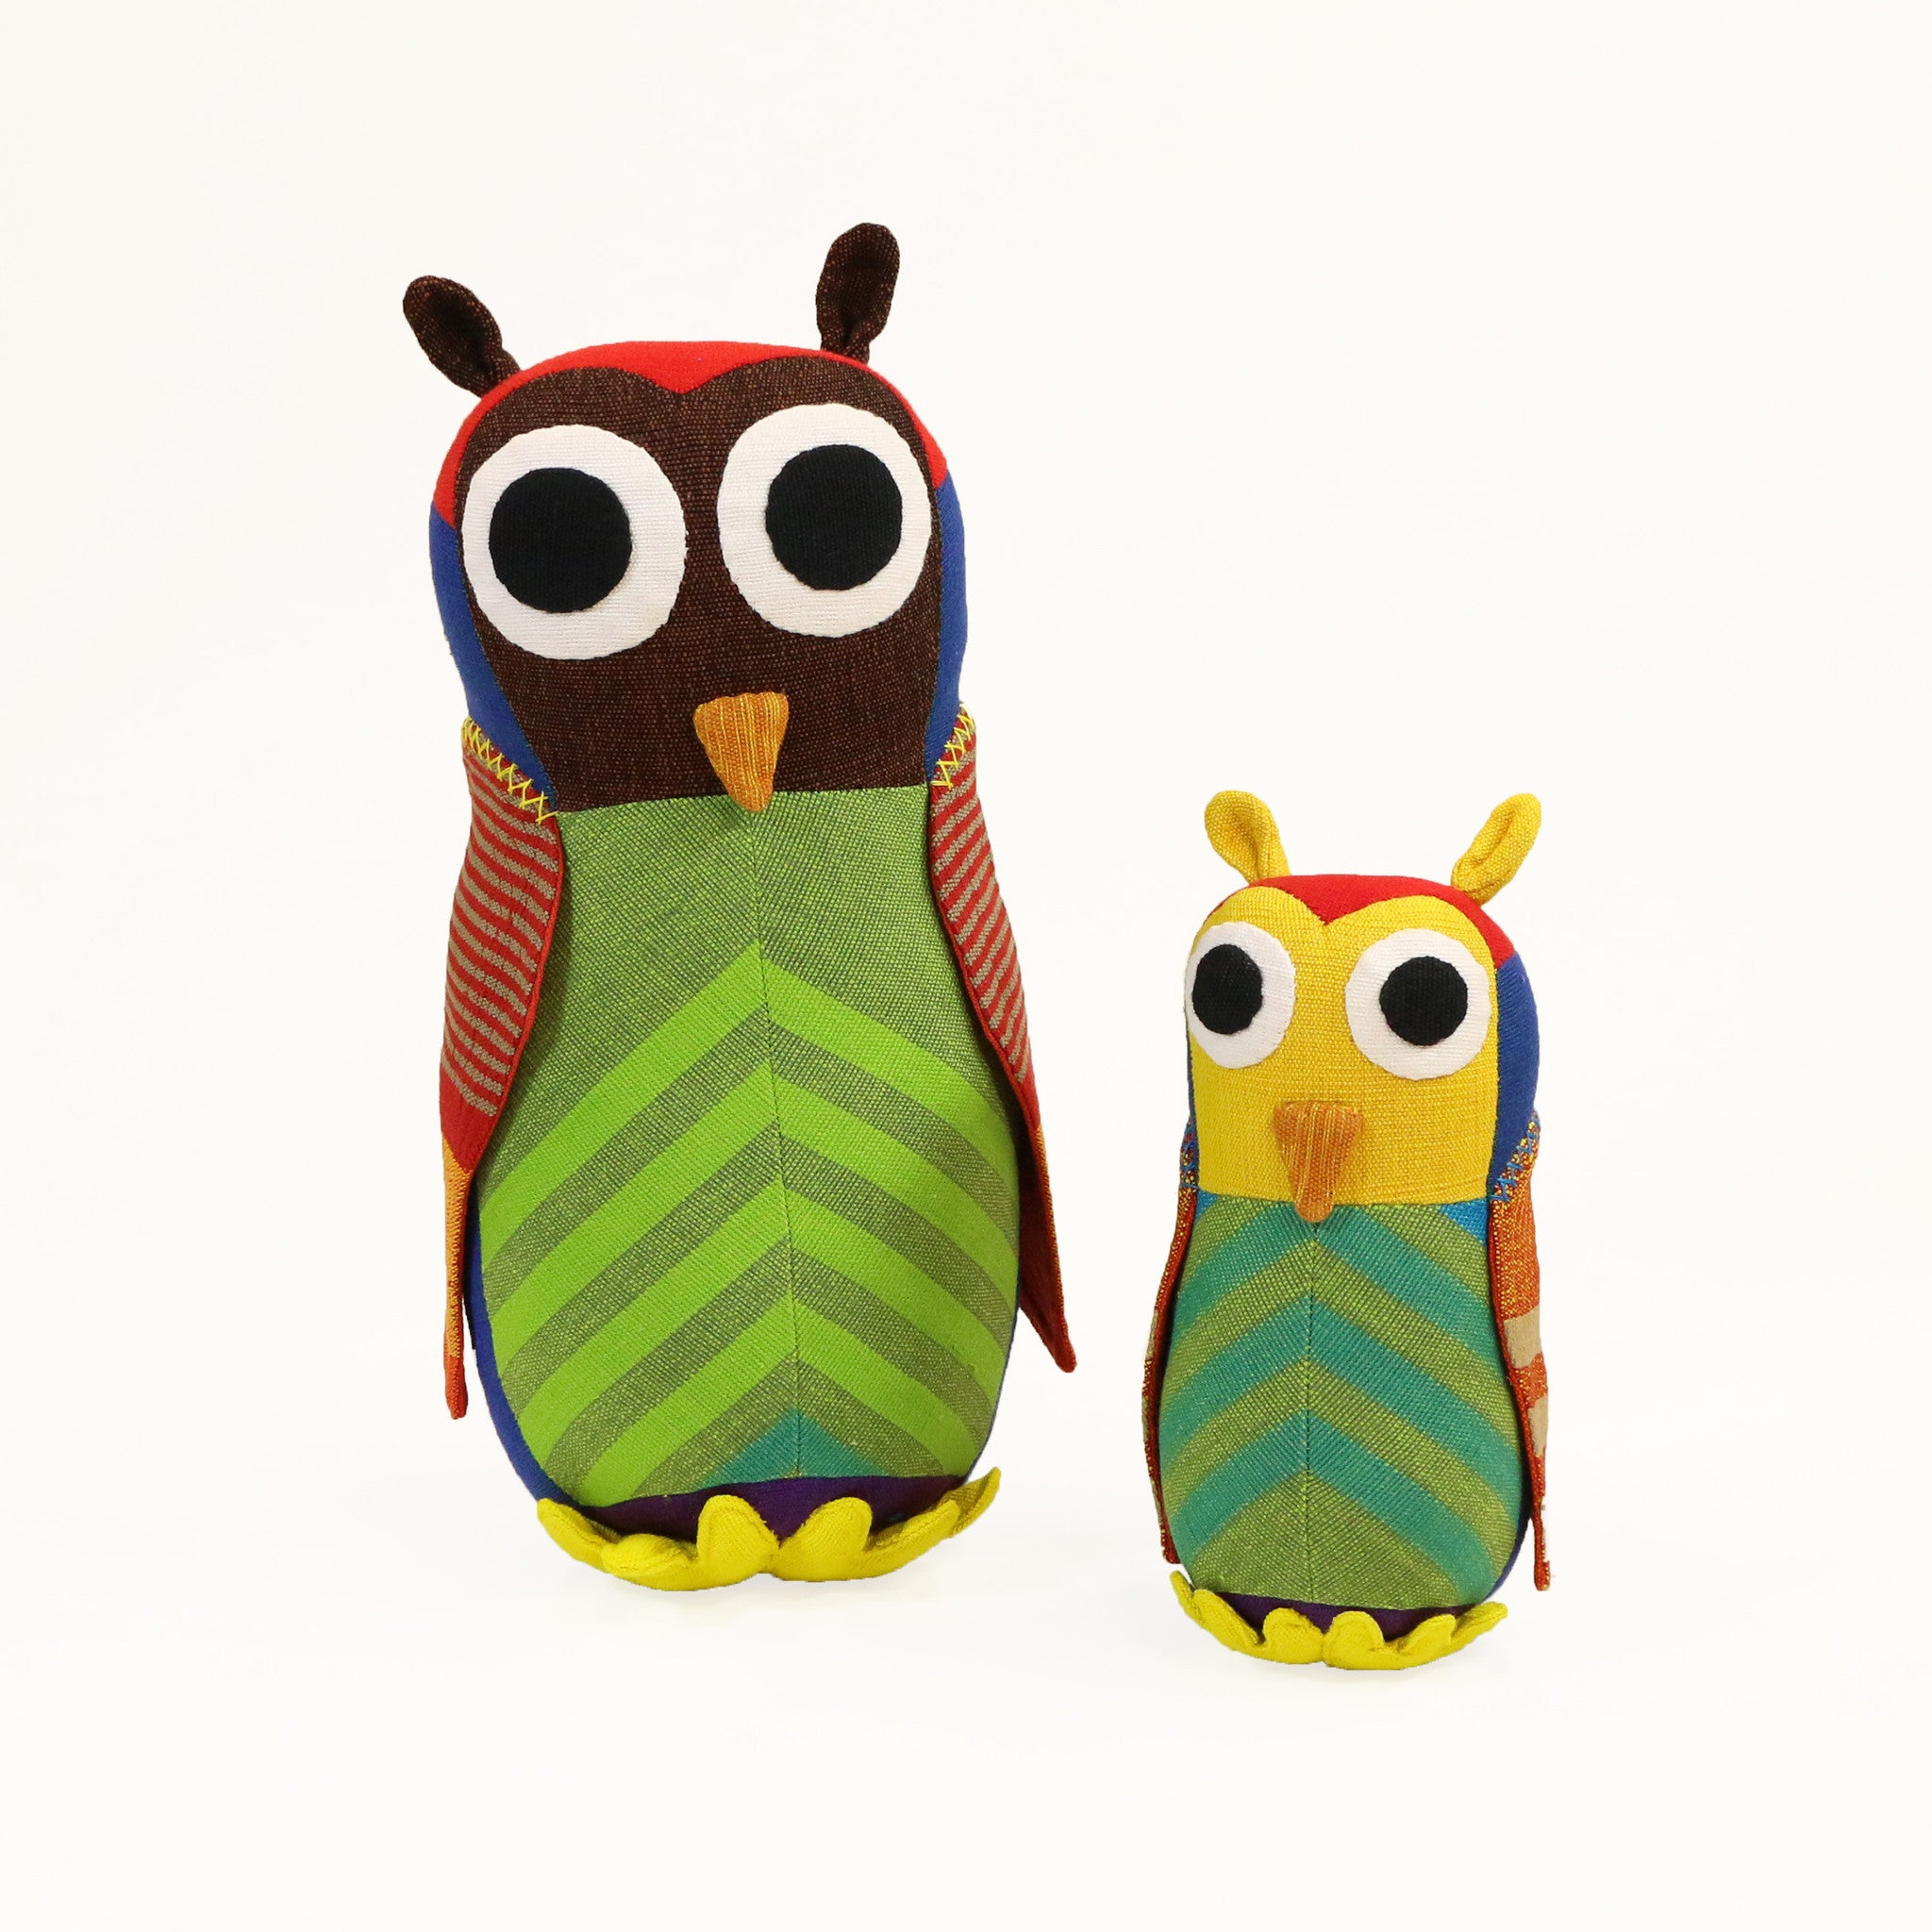 Owl Toy - Hunter, the Owl (small & large sizes)